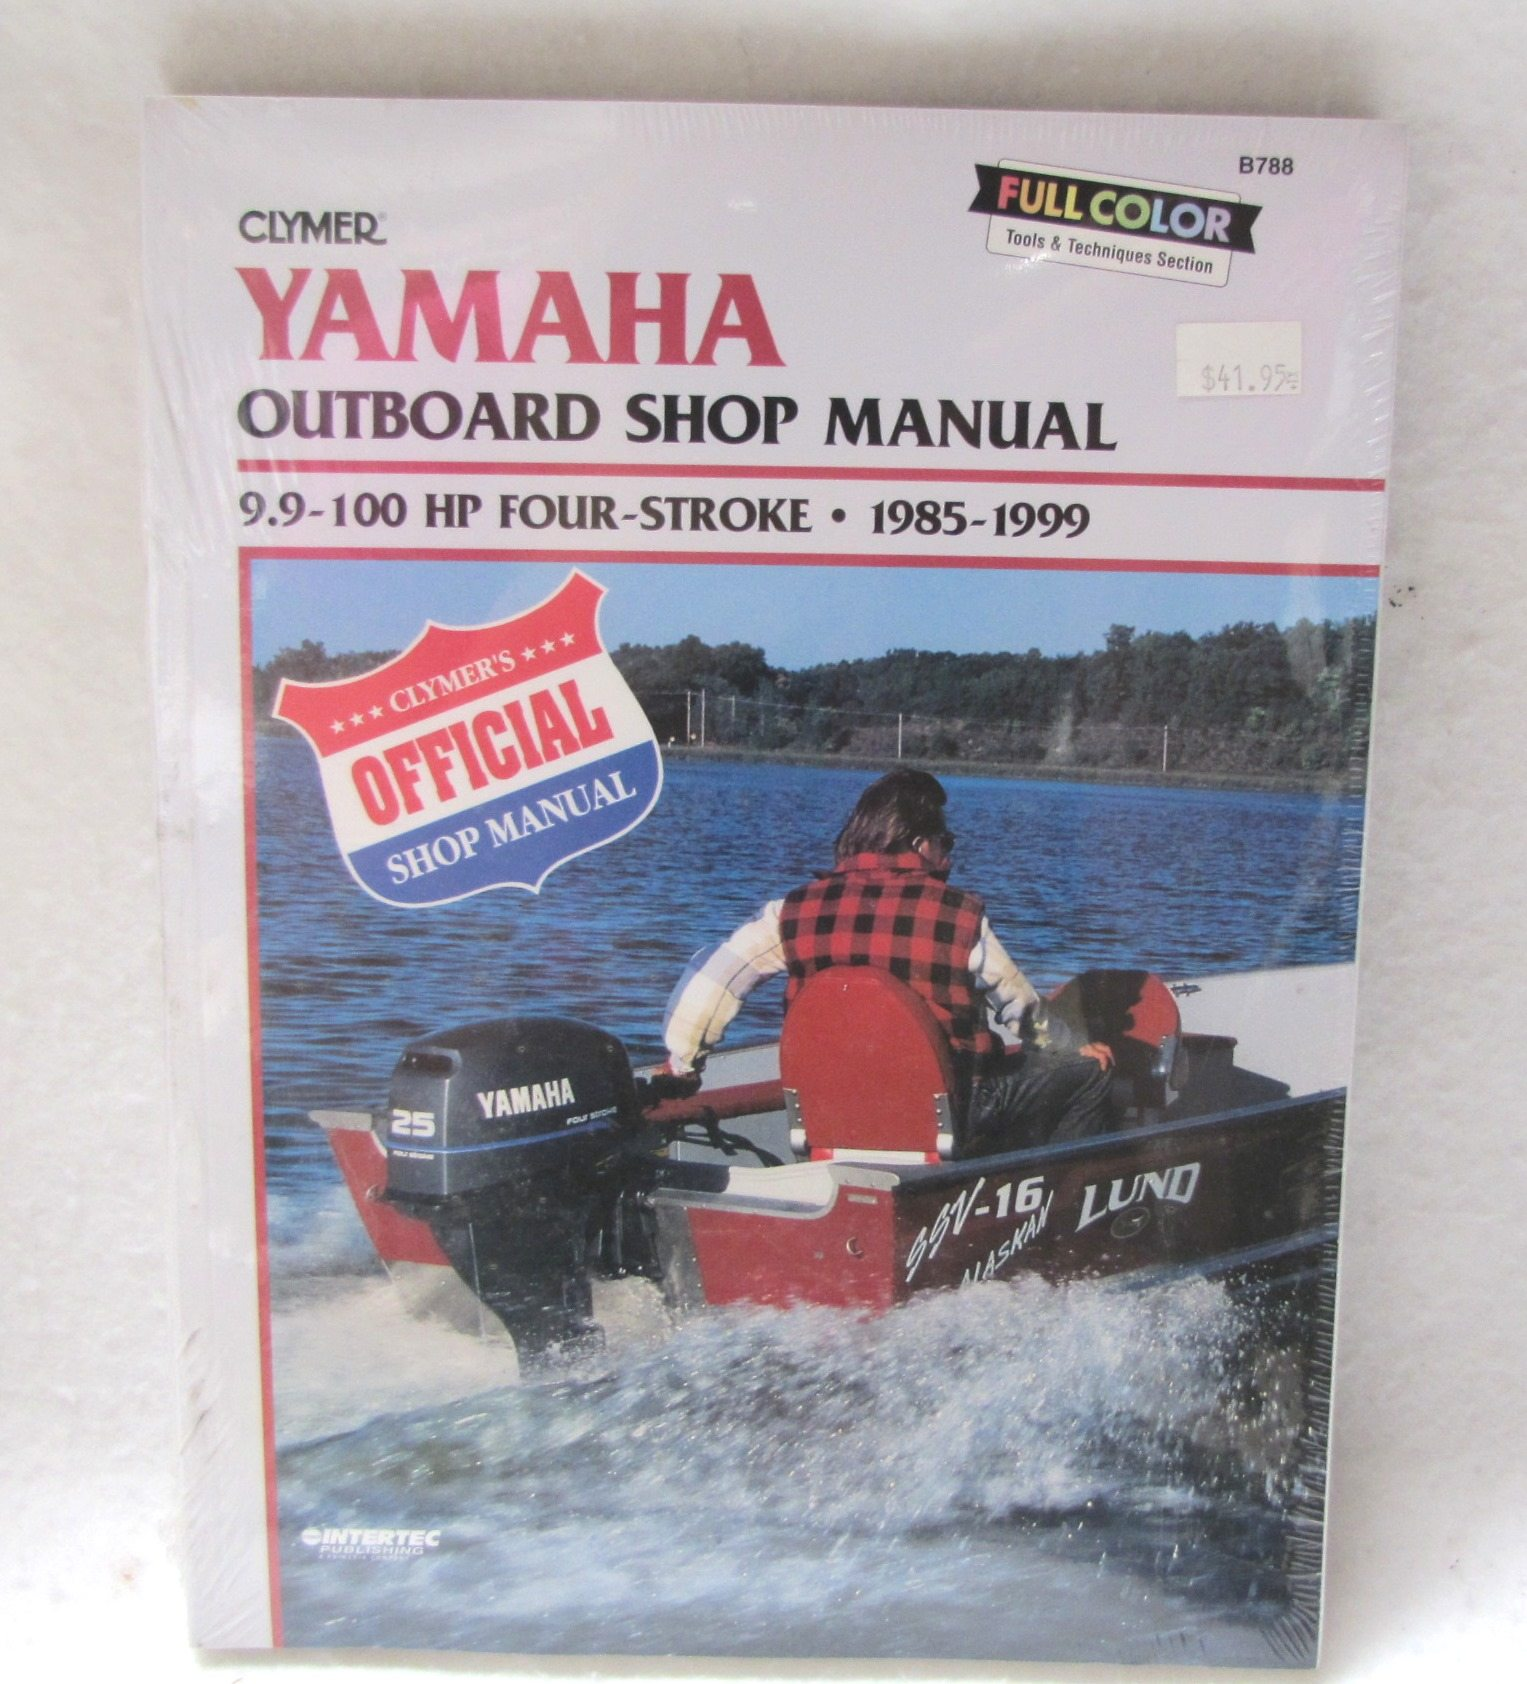 Clymer repair manual yamaha 9 9 100hp 4 stroke outboards for Yamaha 9 9 hp outboard motor manual